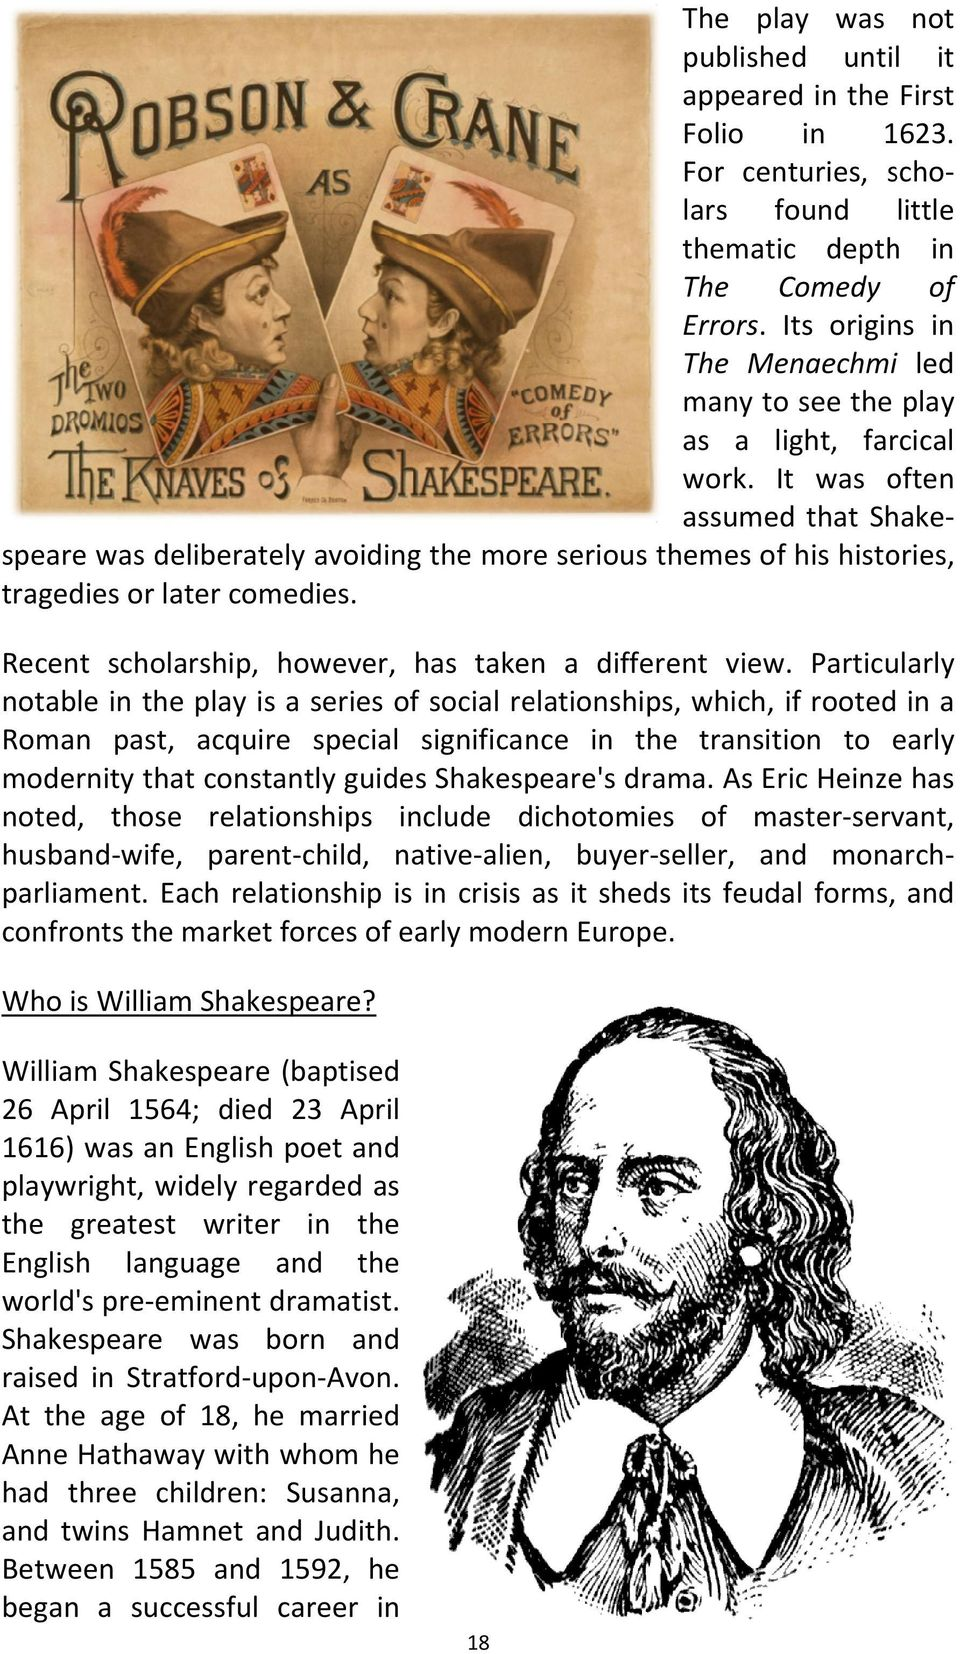 speare was deliberately avoiding the more serious themes of his histories, Recent scholarship, however, has taken a different view.